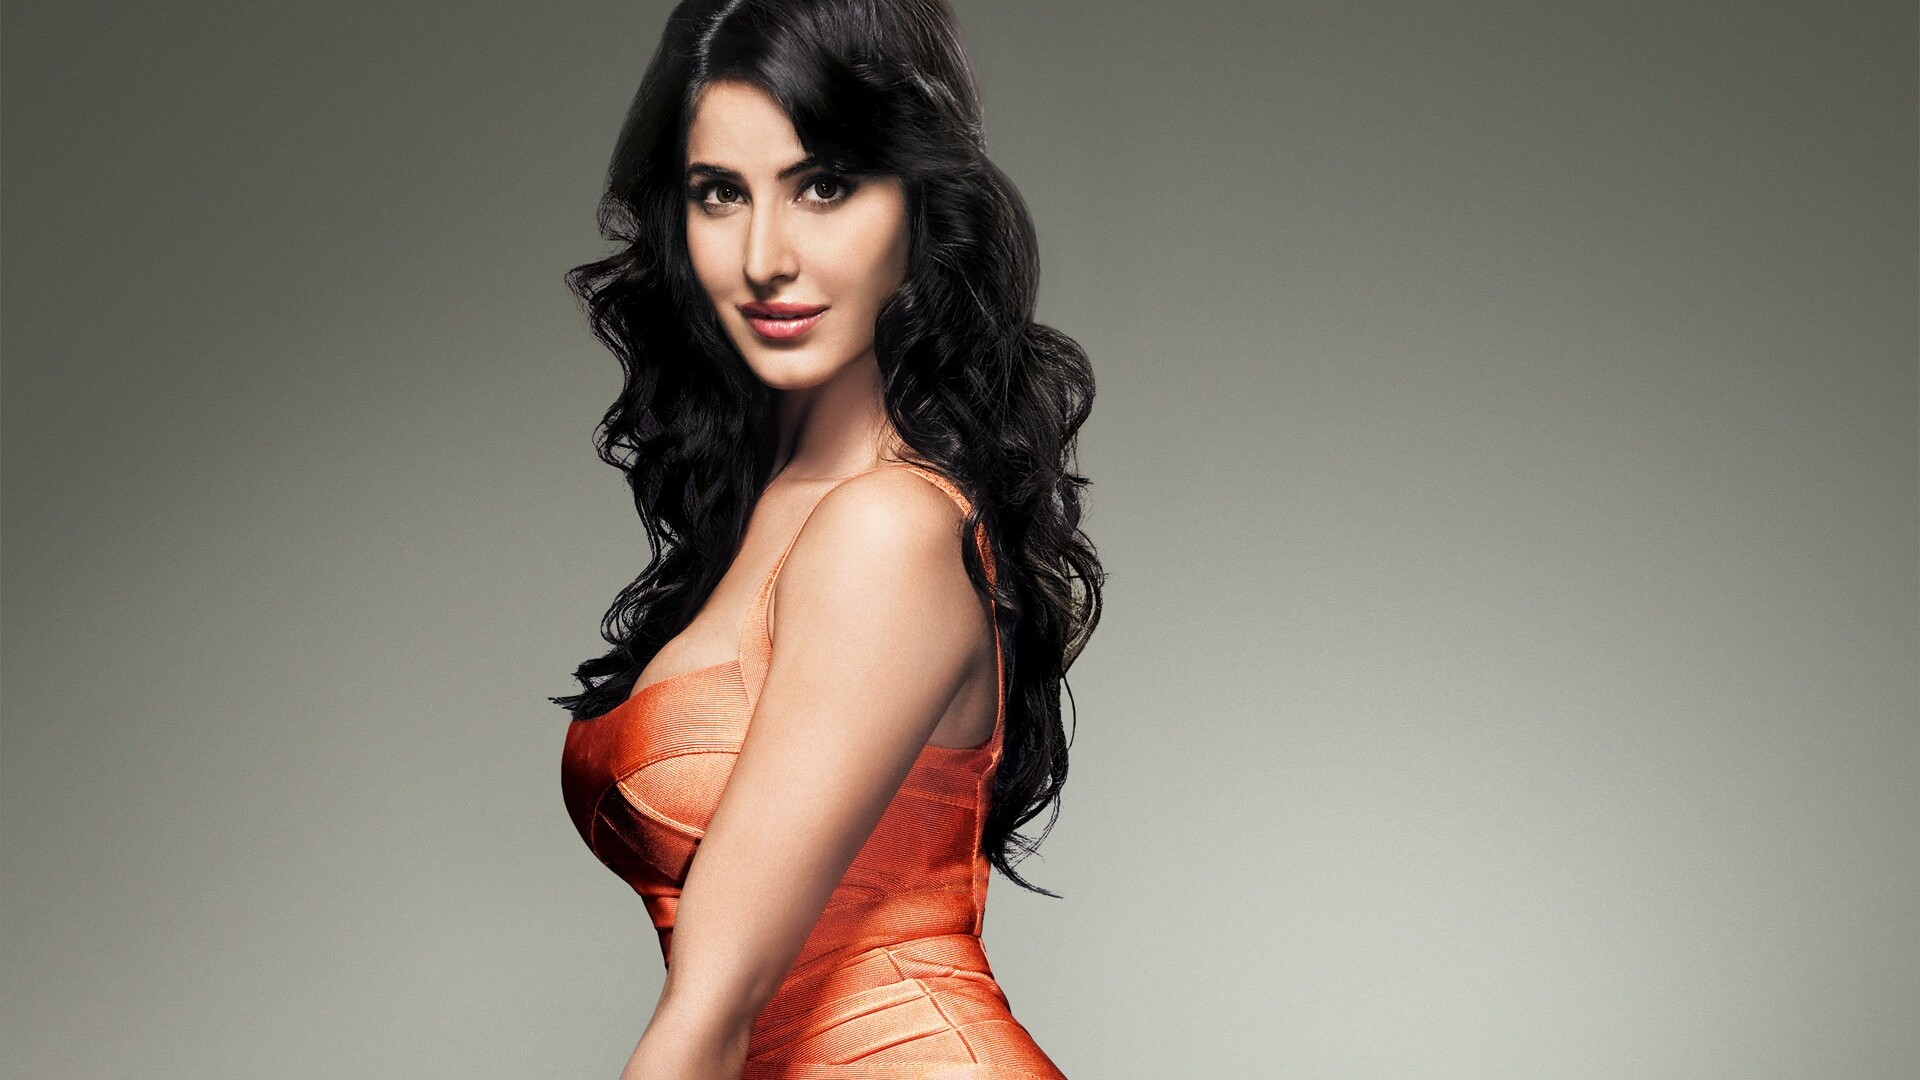 1920x1080 Katrina Kaif 5 Laptop Full Hd 1080p Hd 4k Wallpapers